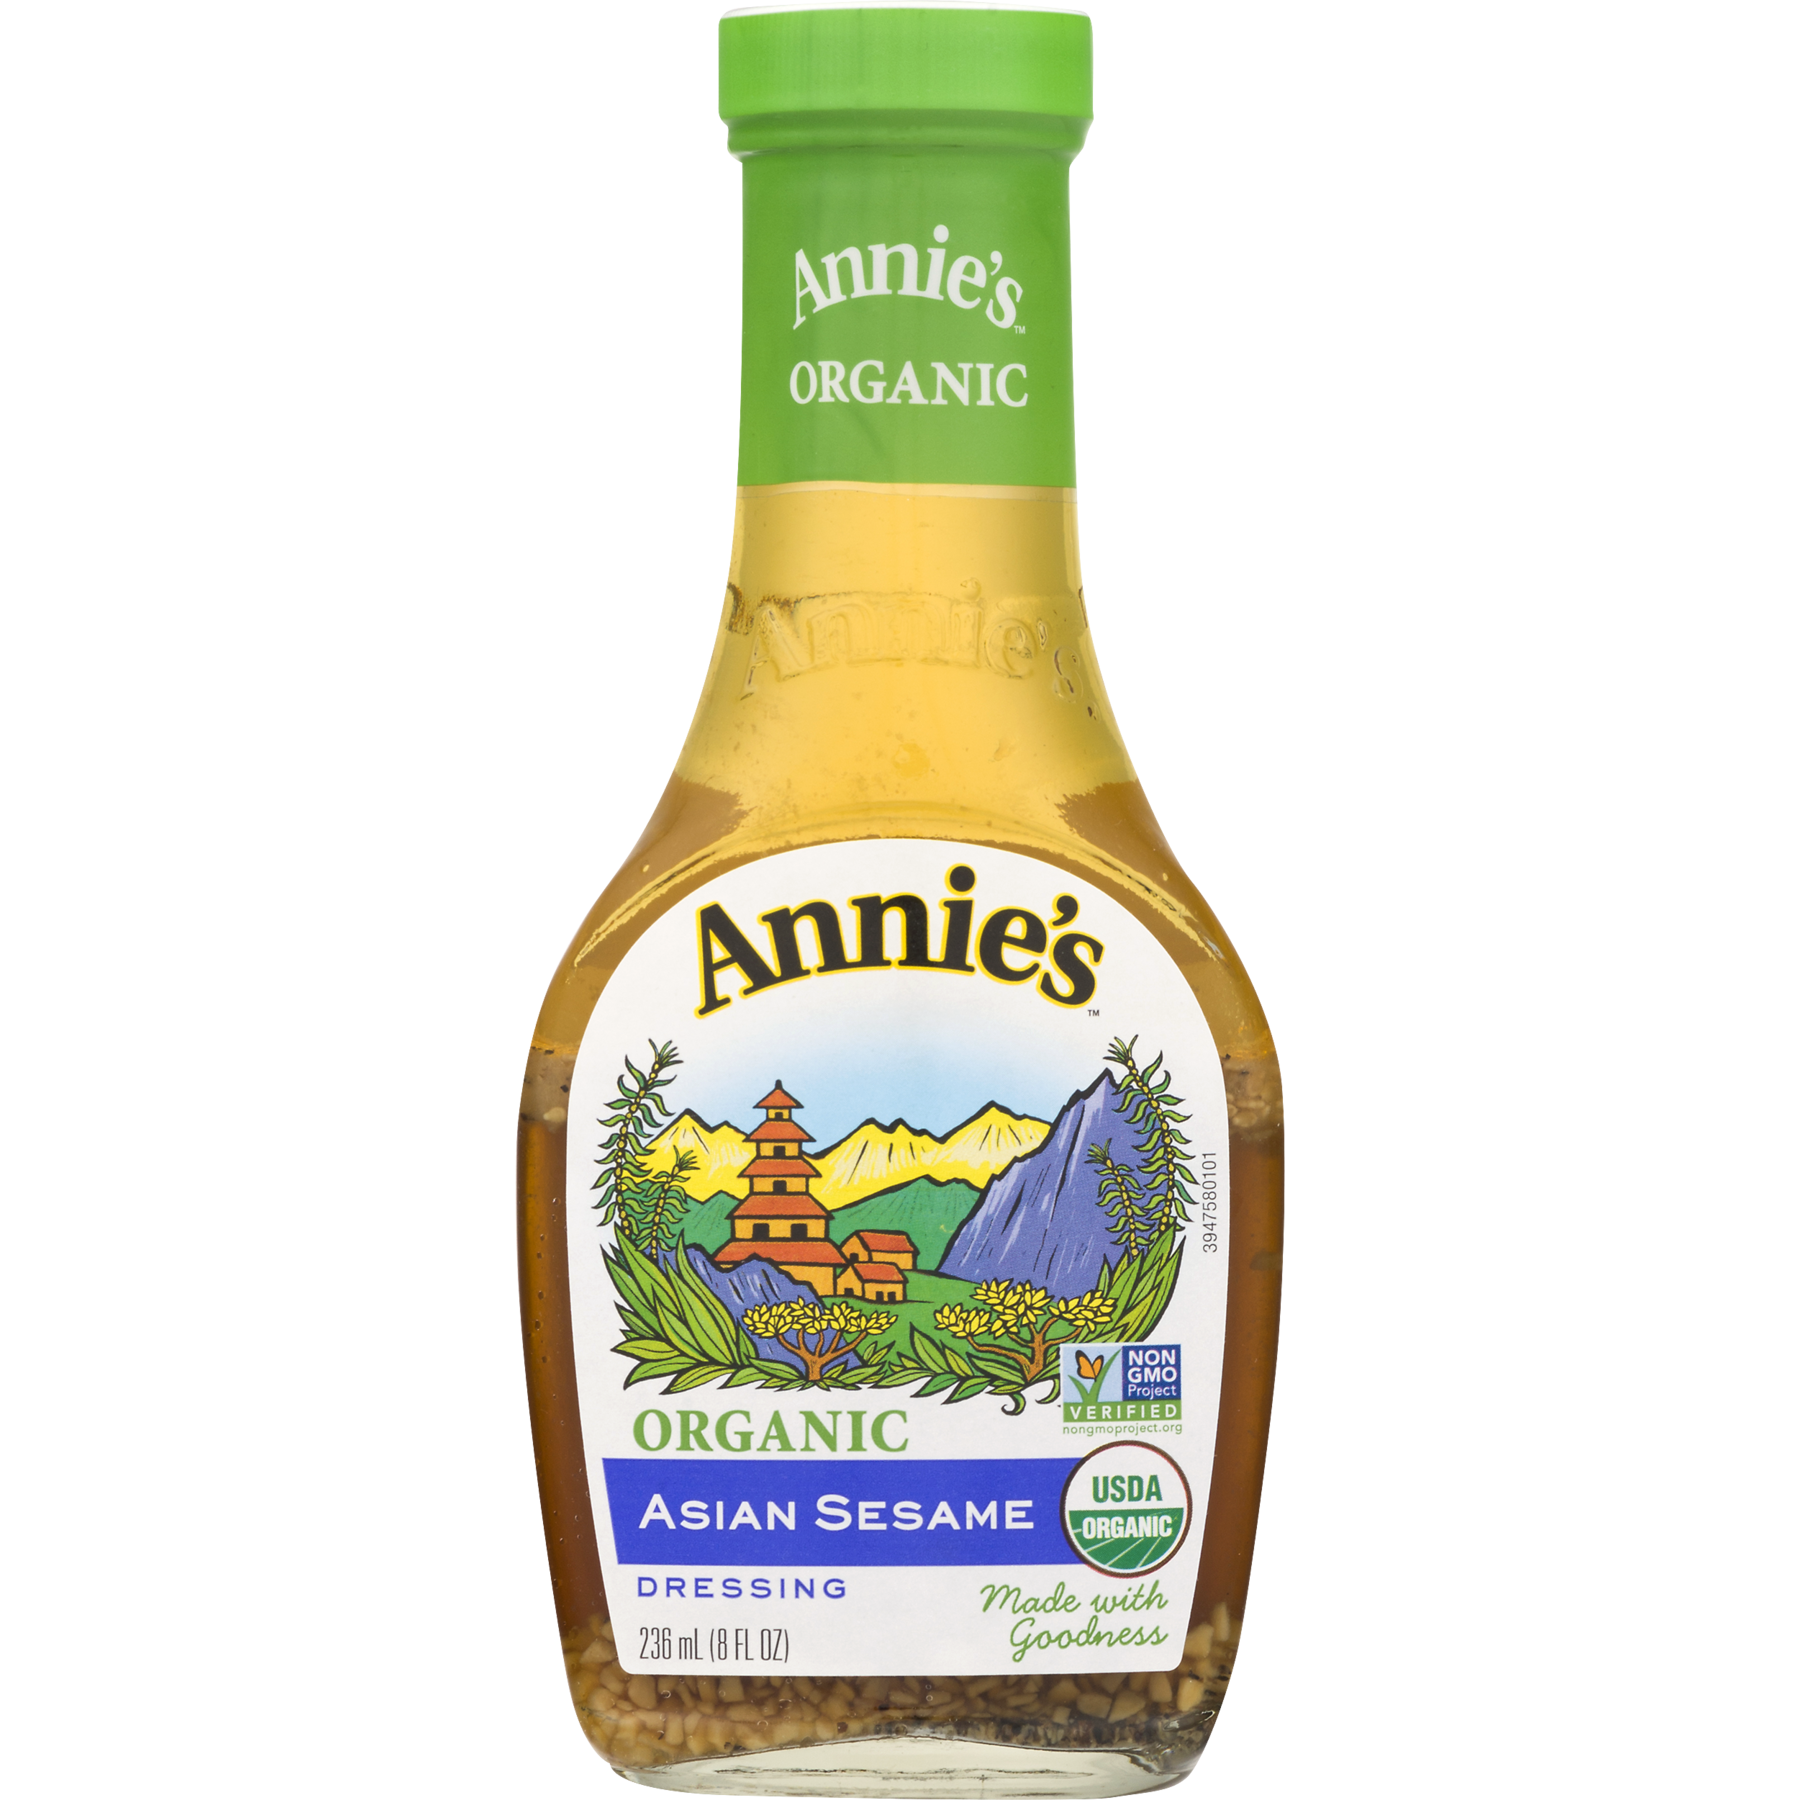 Annie\'s Organic Asian Sesame Dressing, 8 fl oz Bottle - Walmart.com